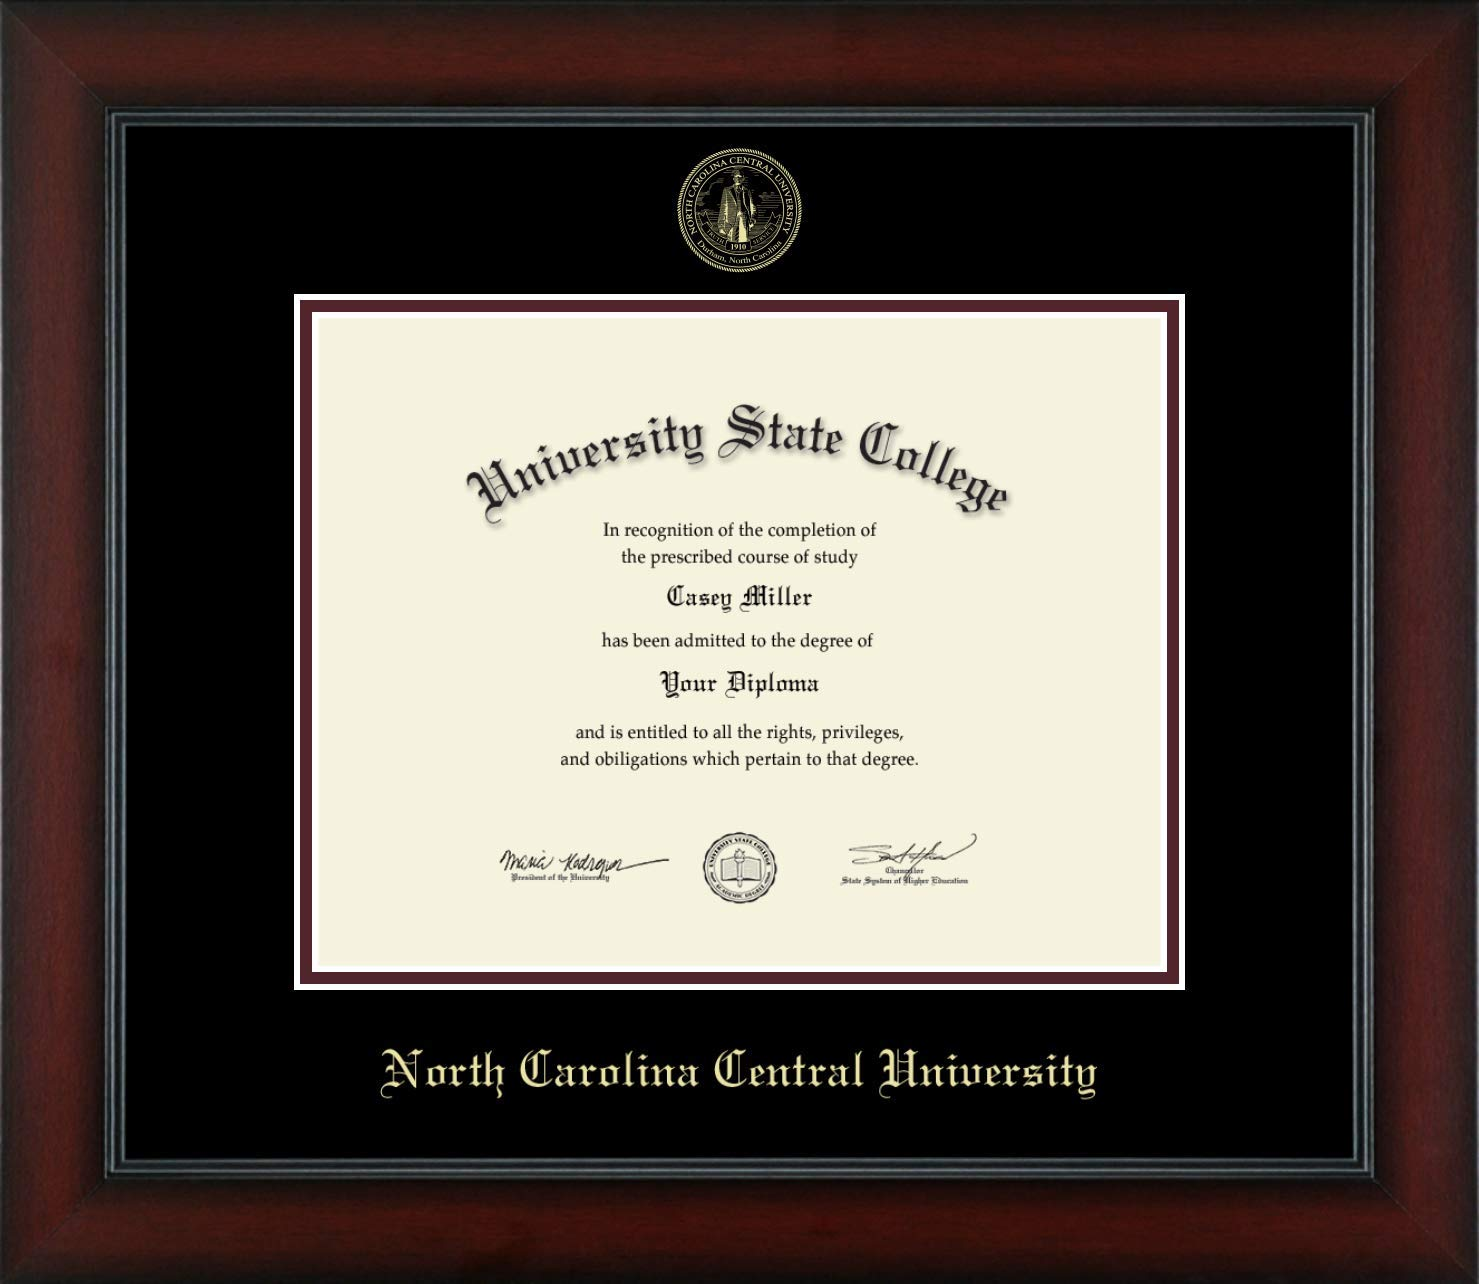 North Carolina Central University - Officially Licensed - Gold Embossed Diploma Frame - Diploma Size 11'' x 8.5''